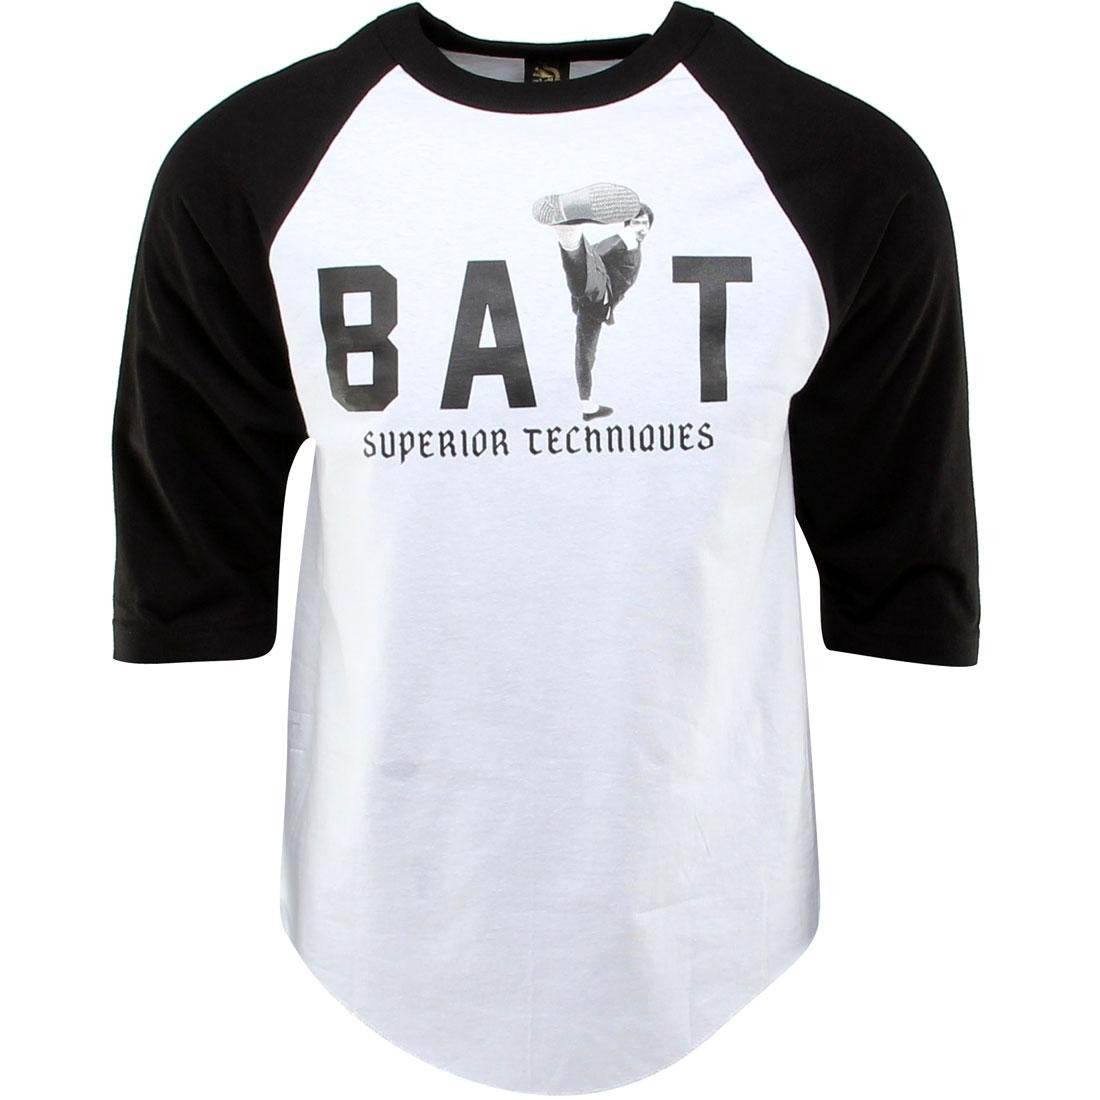 BAIT x Bruce Lee High Kick Raglan Tee (white / black / black) - BAIT SDCC Exclusive